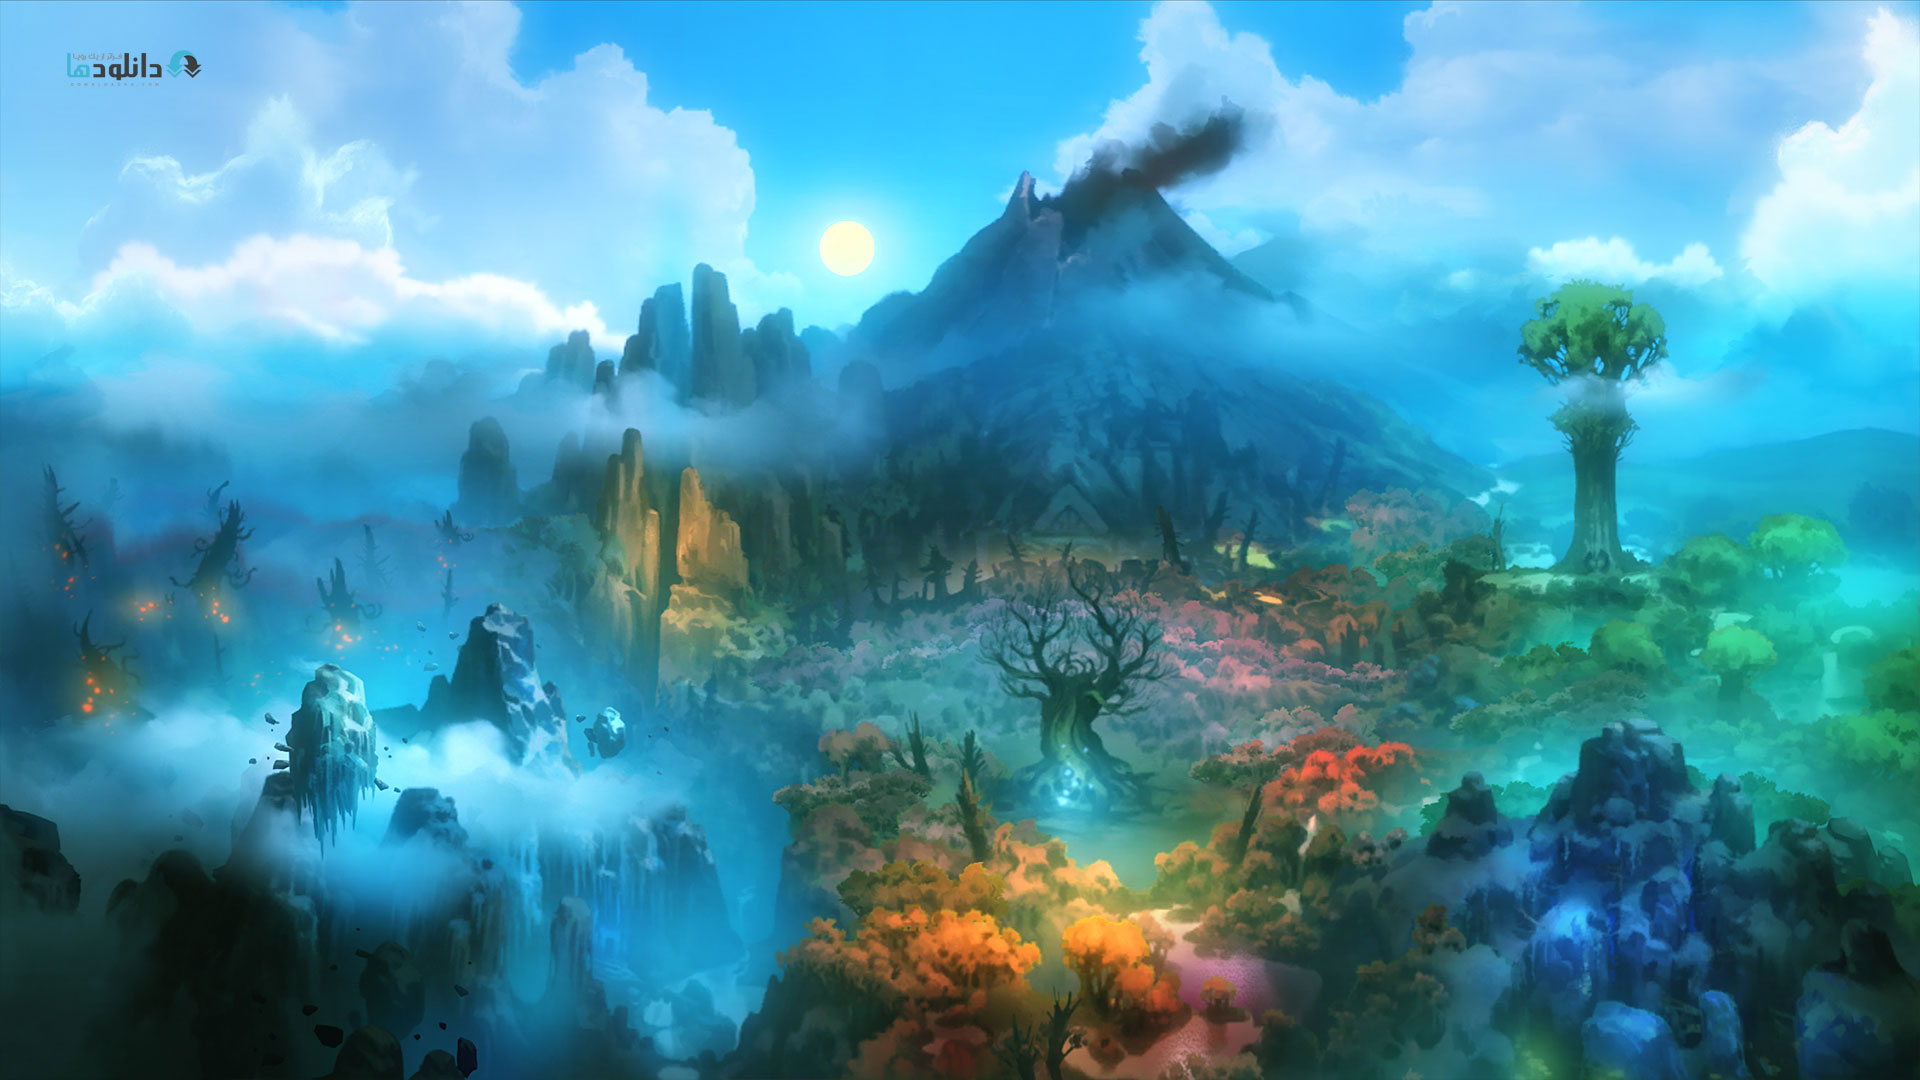 http://img5.downloadha.com/hosein/Game/March%202015/11/Ori-and-the-Blind-Forest-screenshots-02-large.jpg